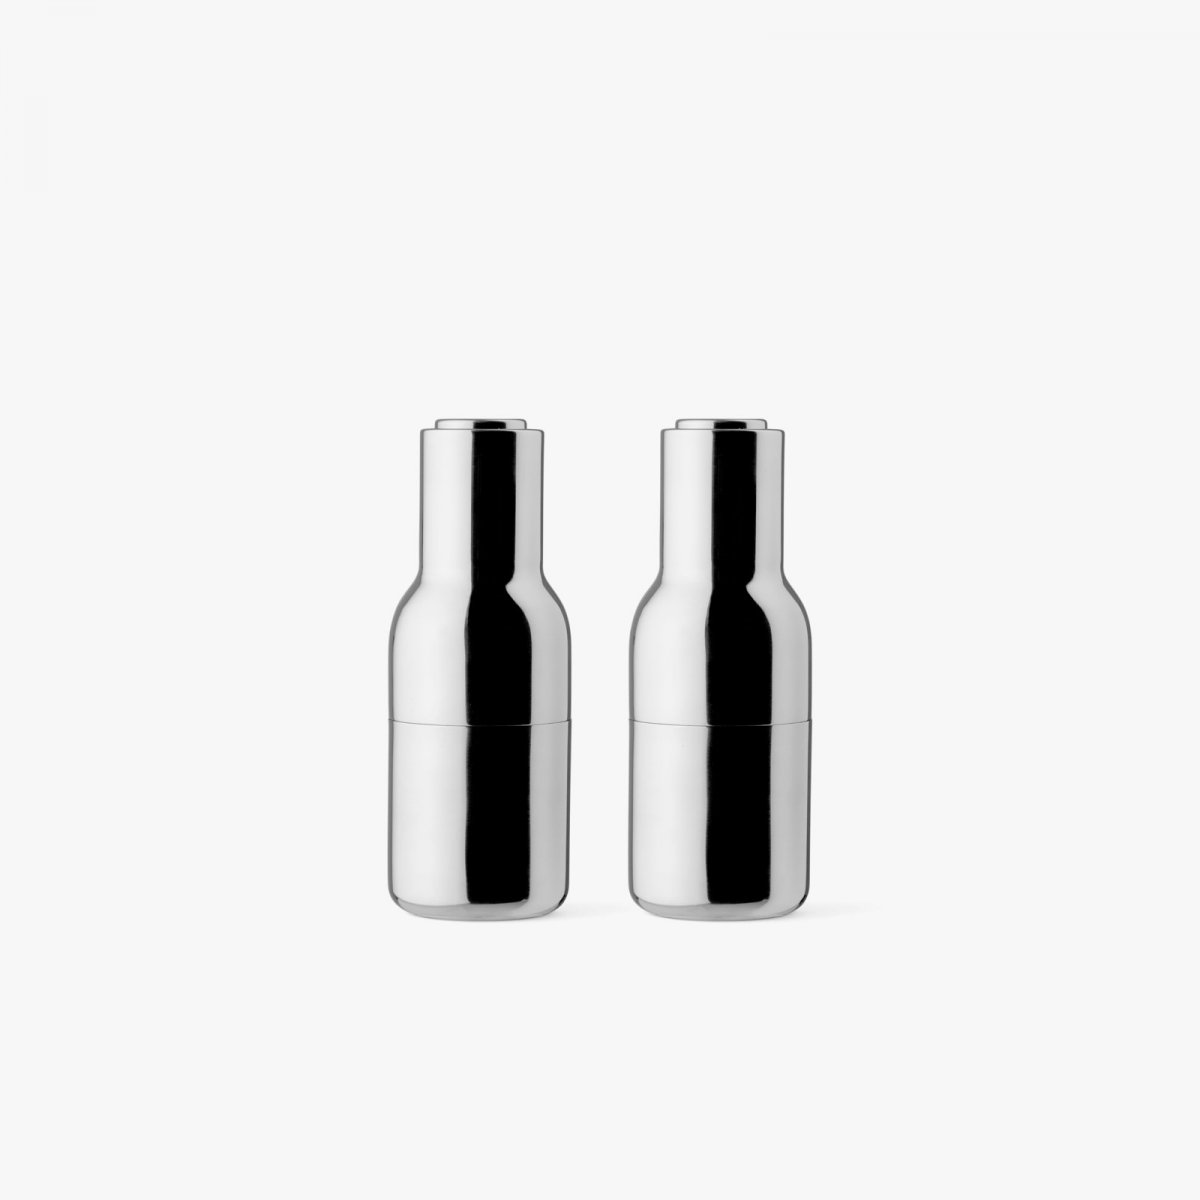 Bottle Grinders, mirror polished stainless steel.